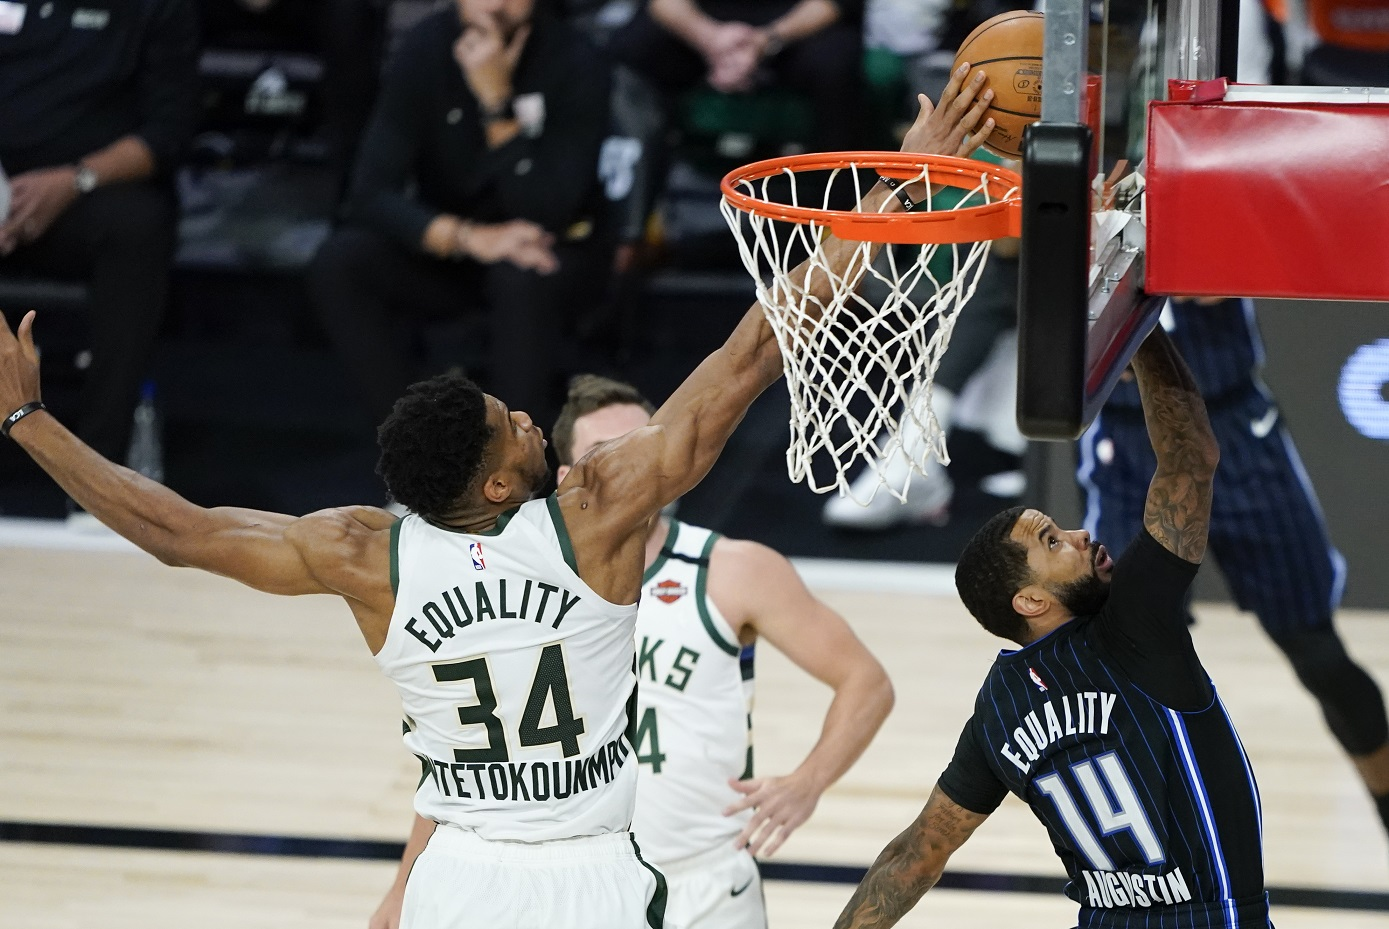 Giannis outduels Vucevic, as Bucks take 3-1 lead with win over Magic